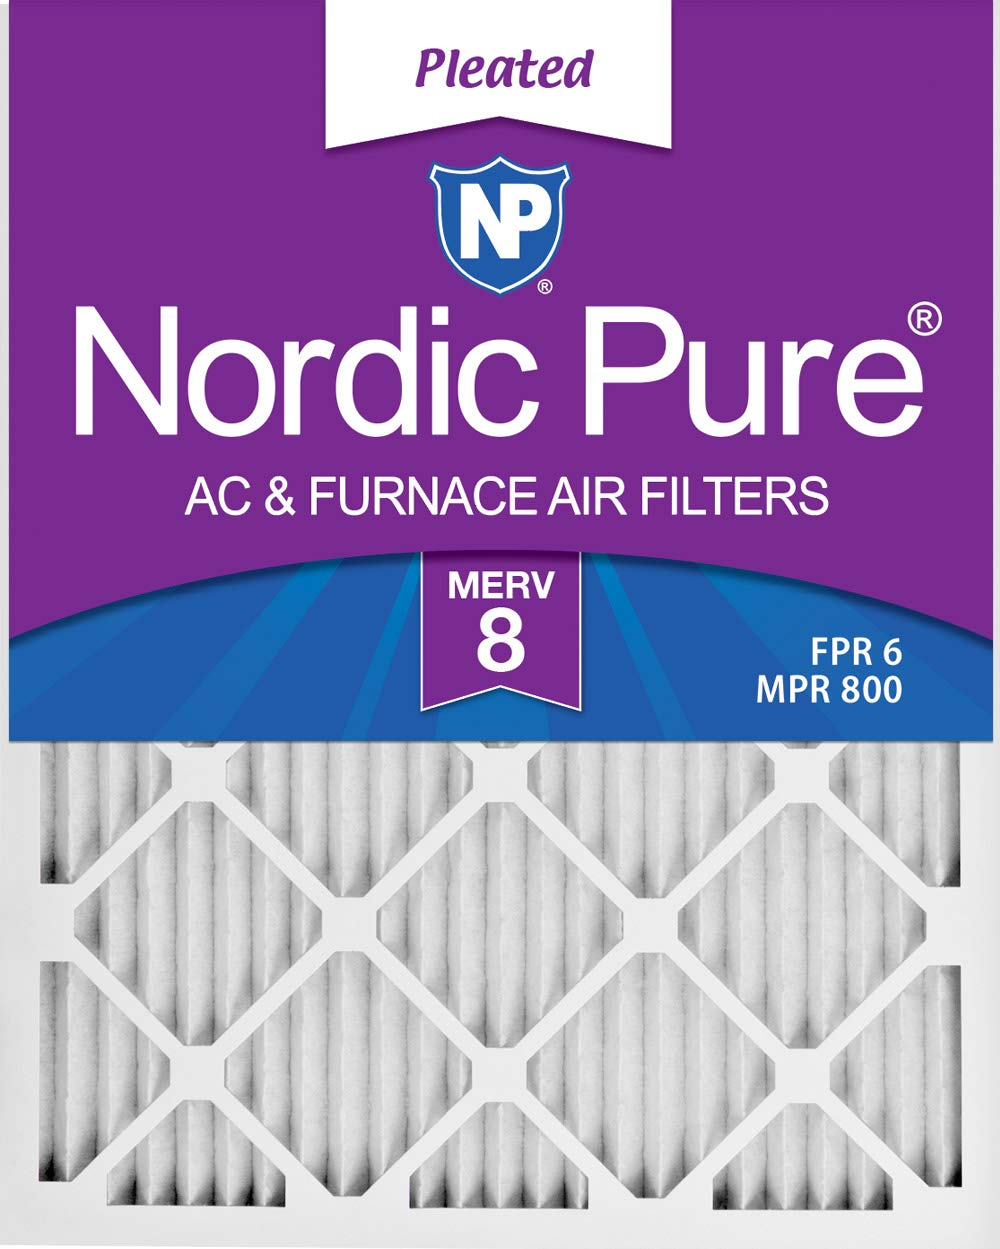 Nordic Pure 16/_1//2x21x1 Exact MERV 8 Pleated AC Furnace Air Filters 4 Pack